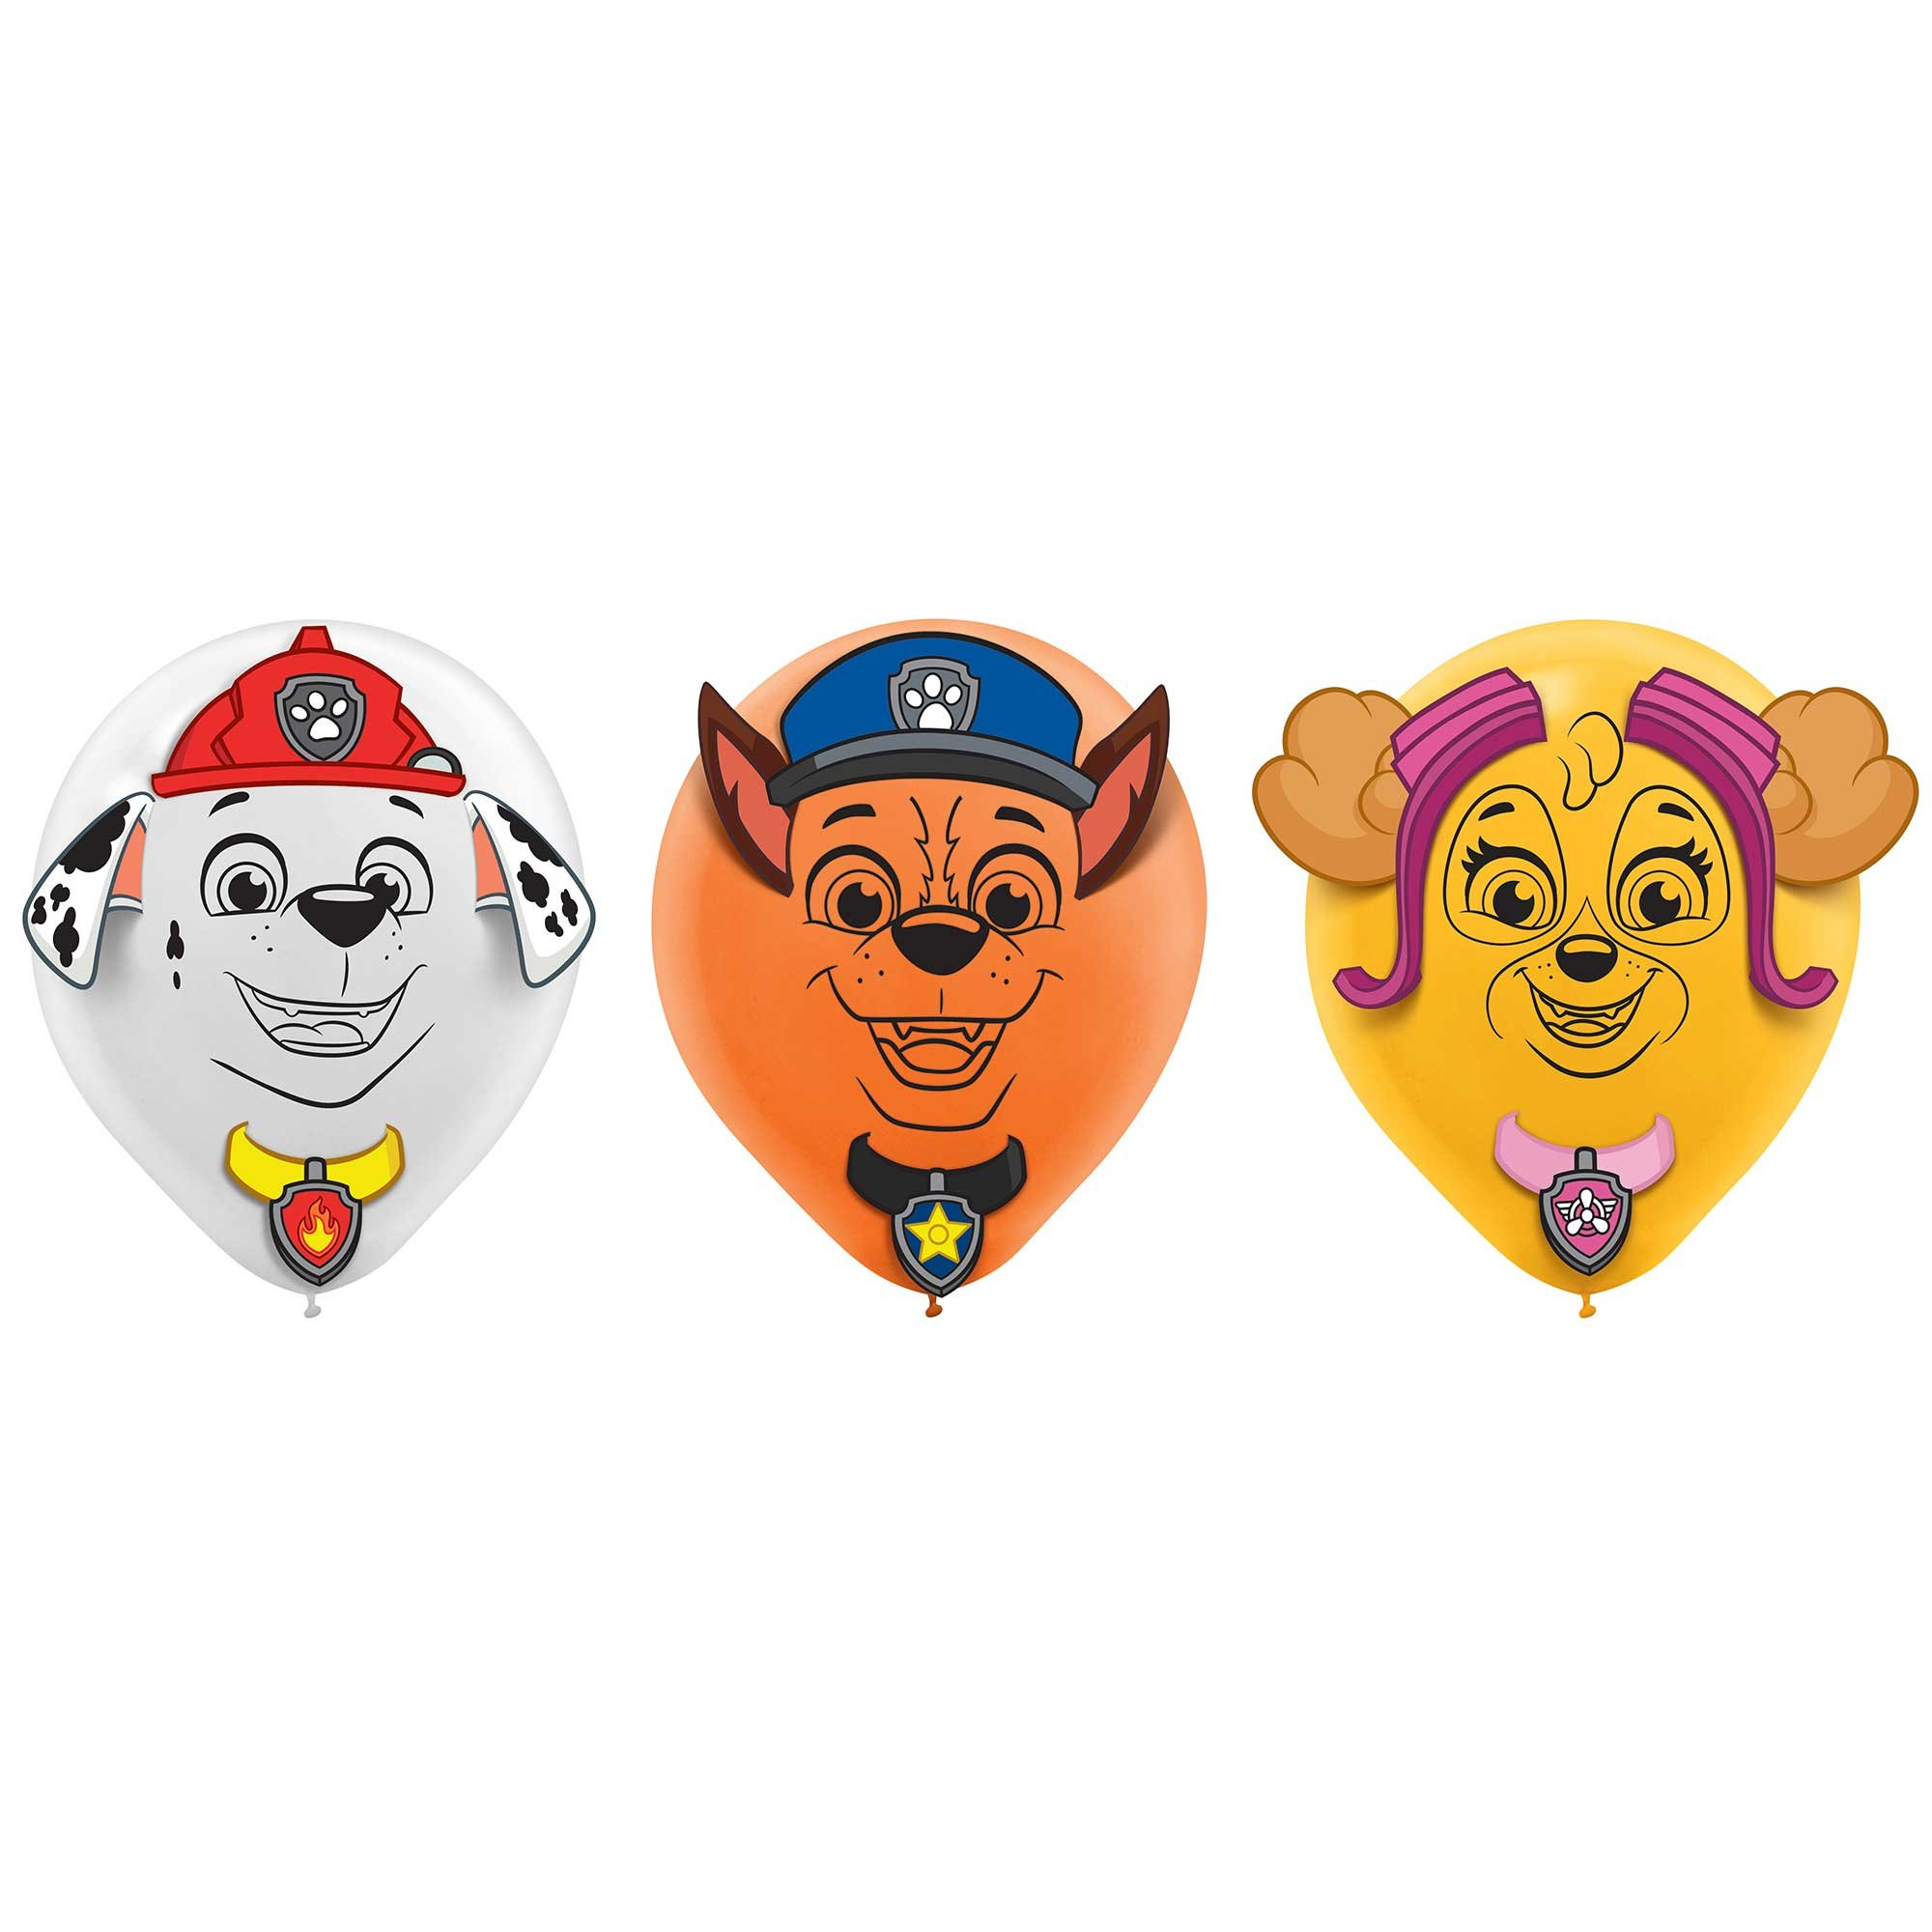 Paw Patrol Adventures 30cm Latex Balloons & Paper Adhesive Add-Ons